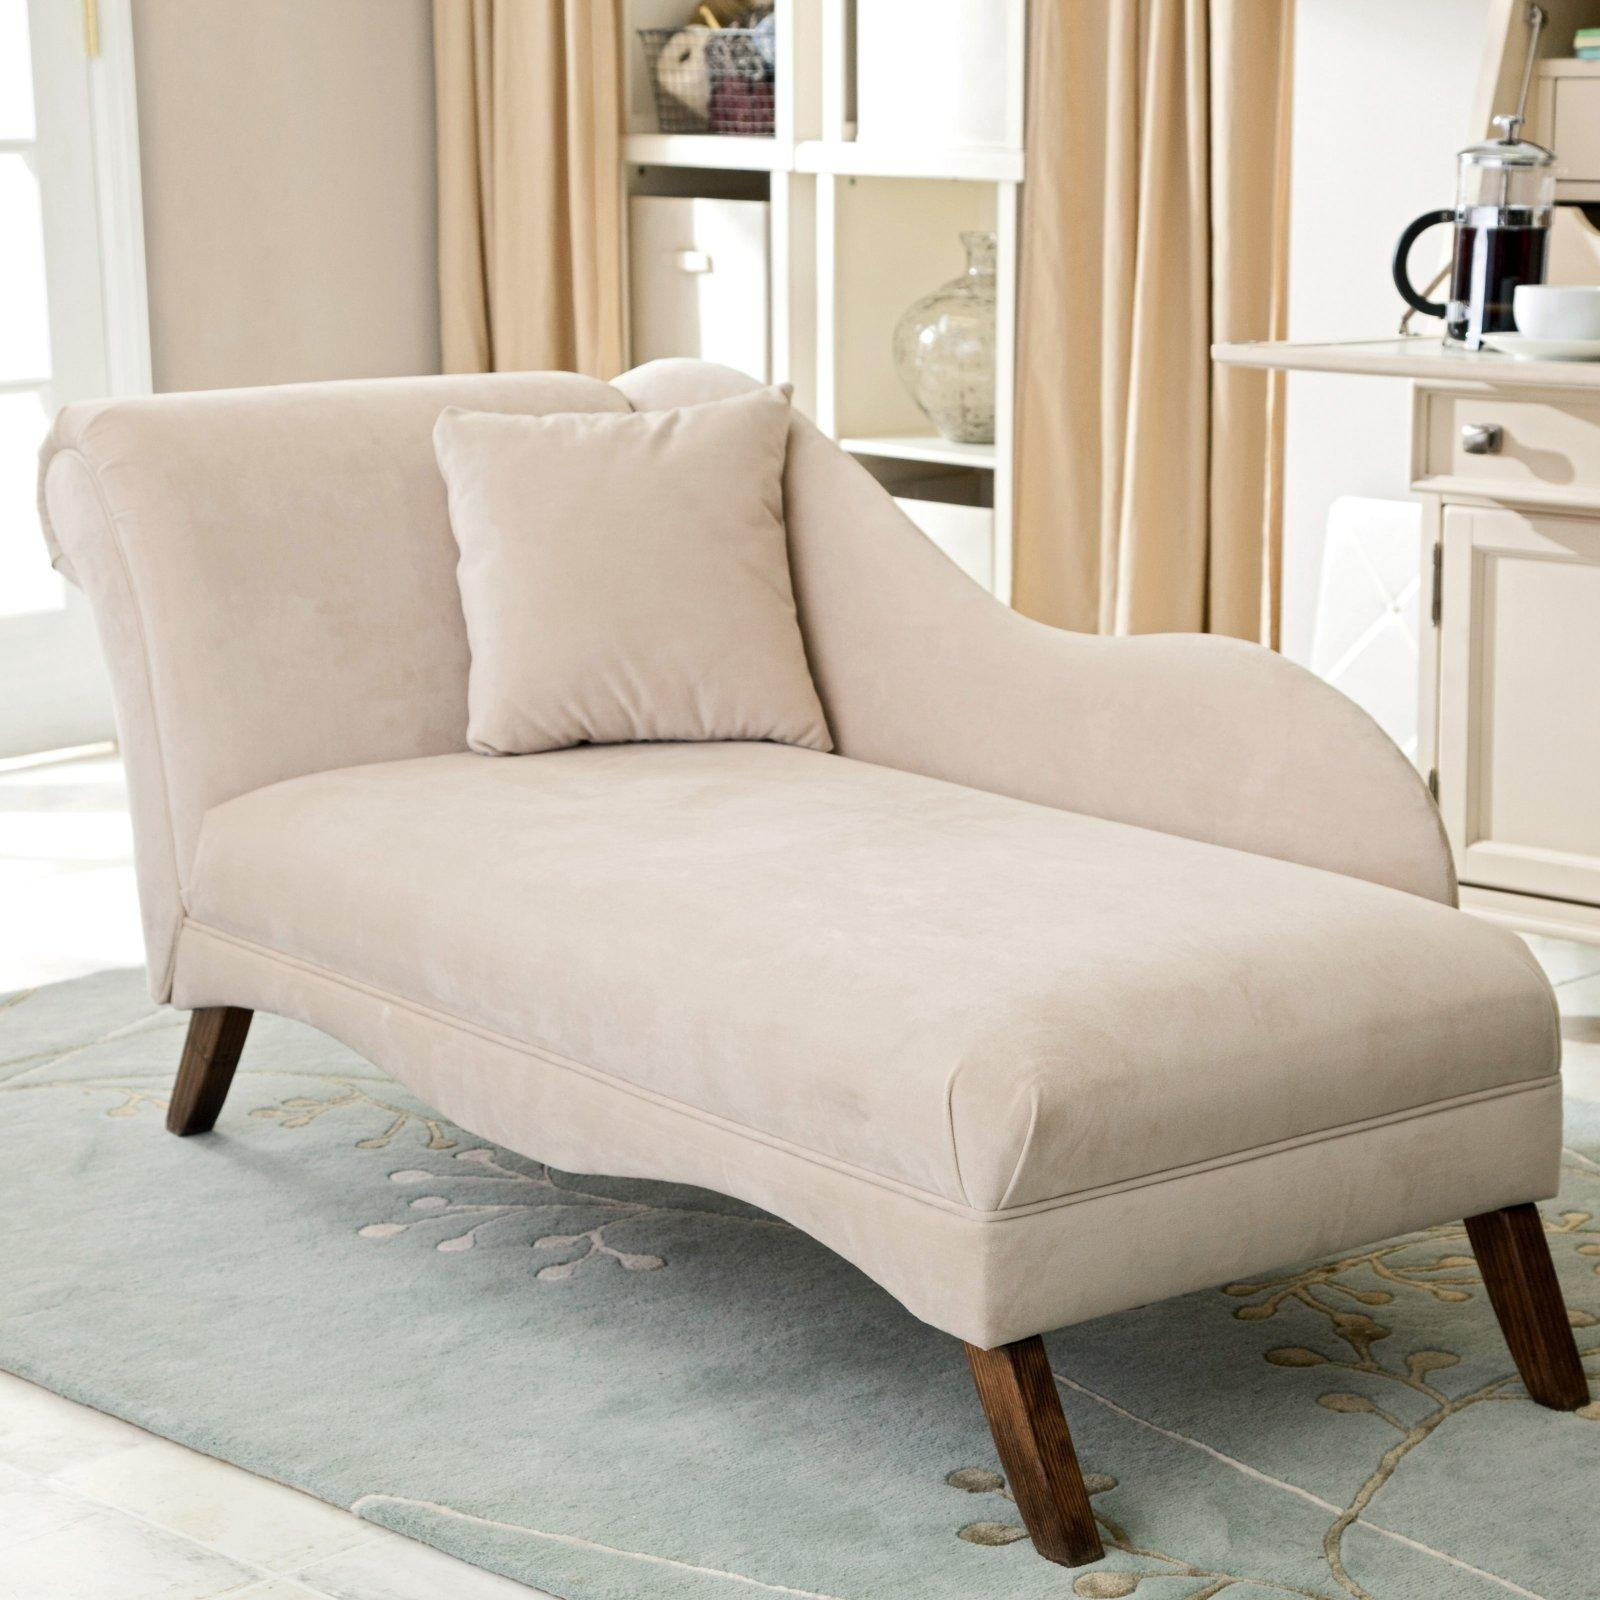 Bedroom : Amazing White Chaise Lounge Slipcover Chaise Lounge For With Slipcovers For Chaise Lounge Sofas (View 19 of 20)